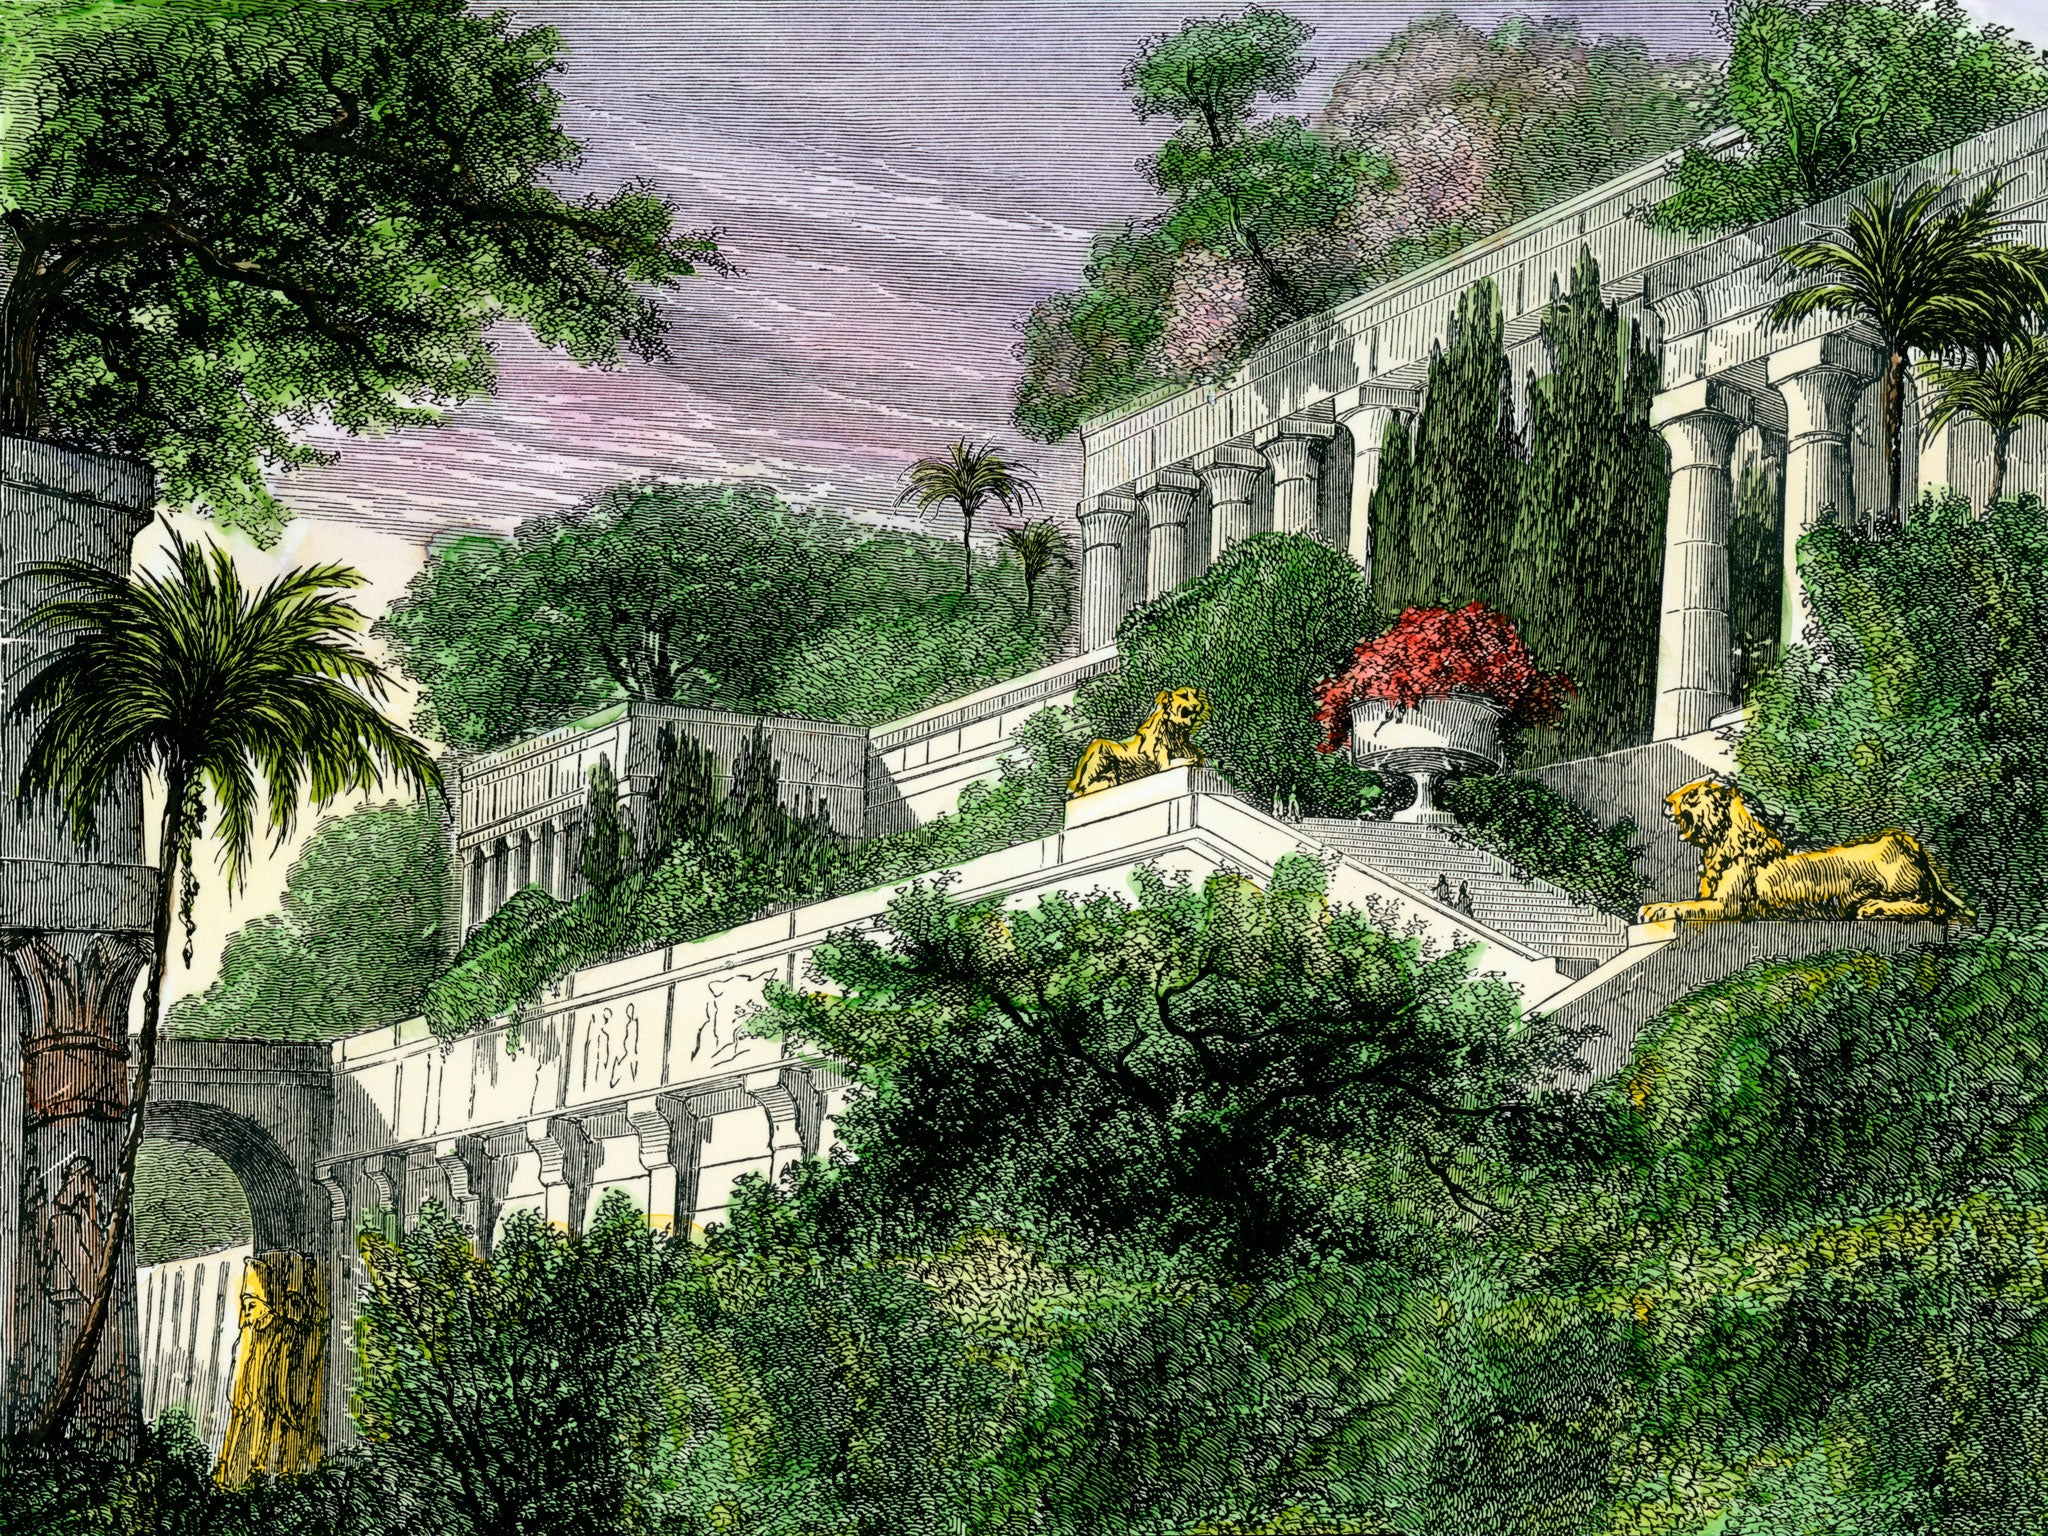 The biggest wonder about the Hanging Gardens of Babylon? They weren't in Babylon